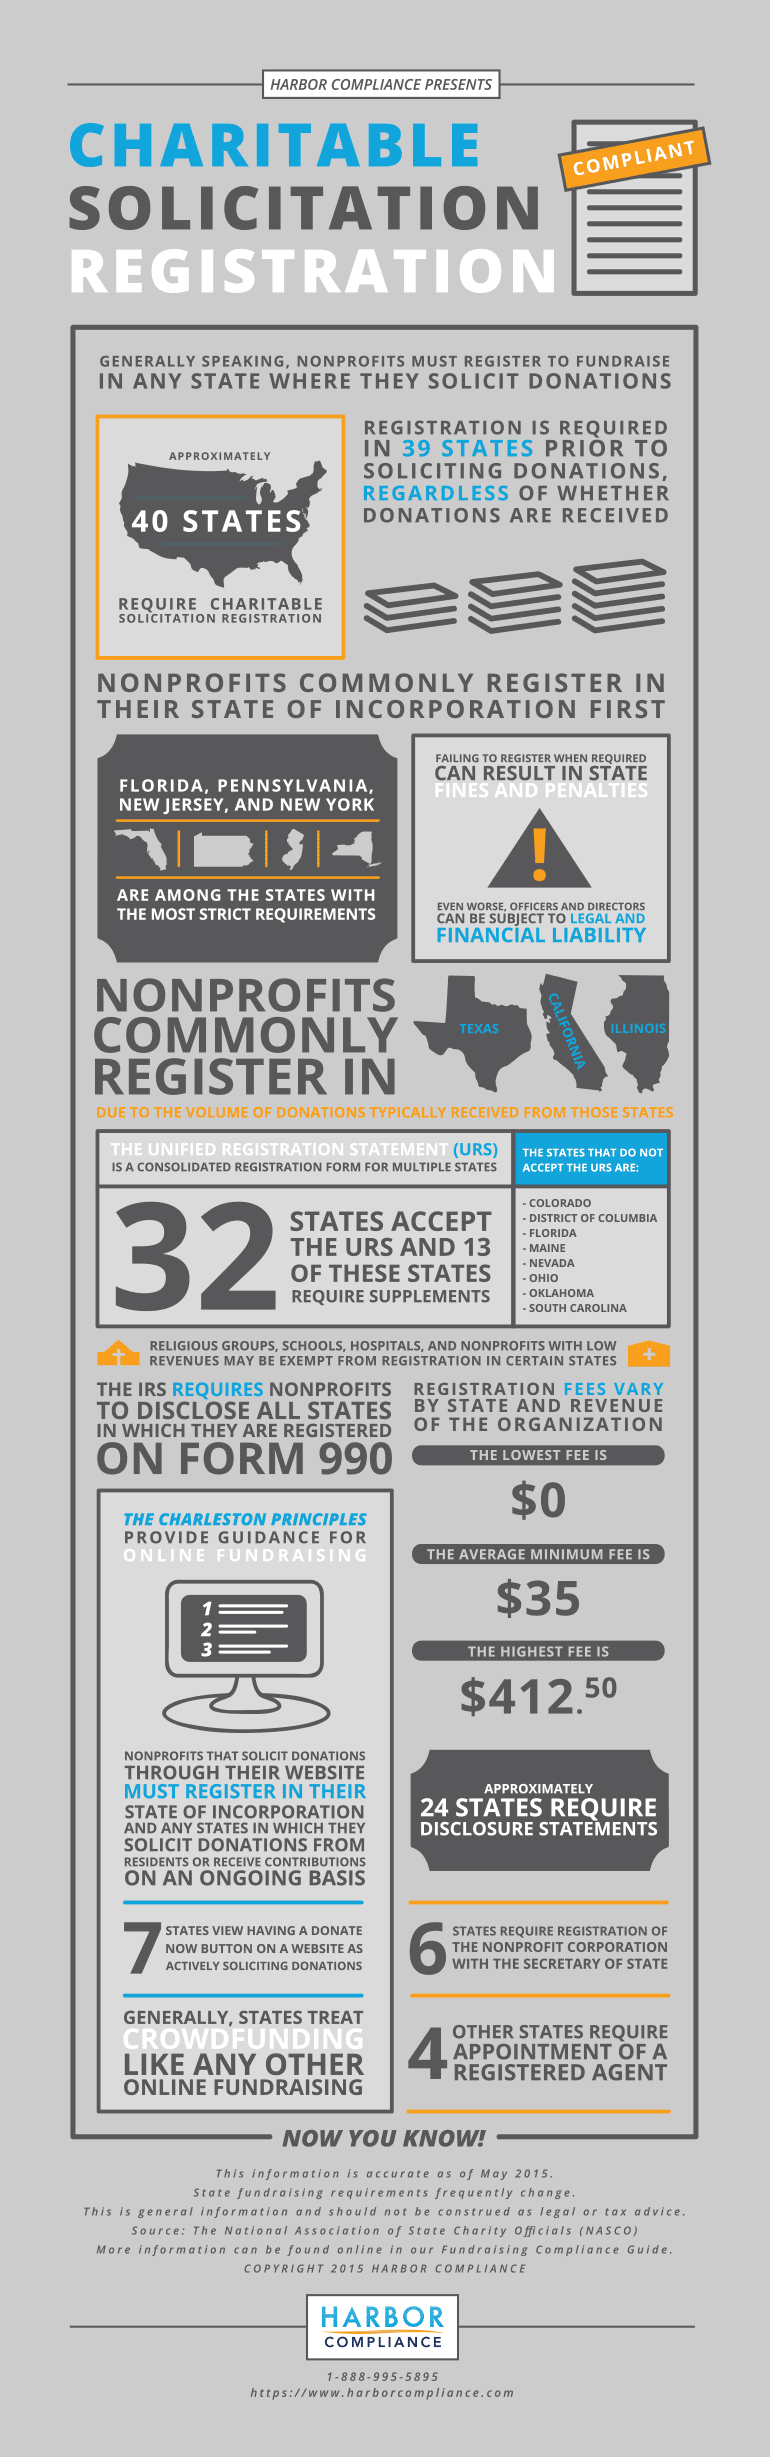 An infographic of Charitable Solicitation Registration